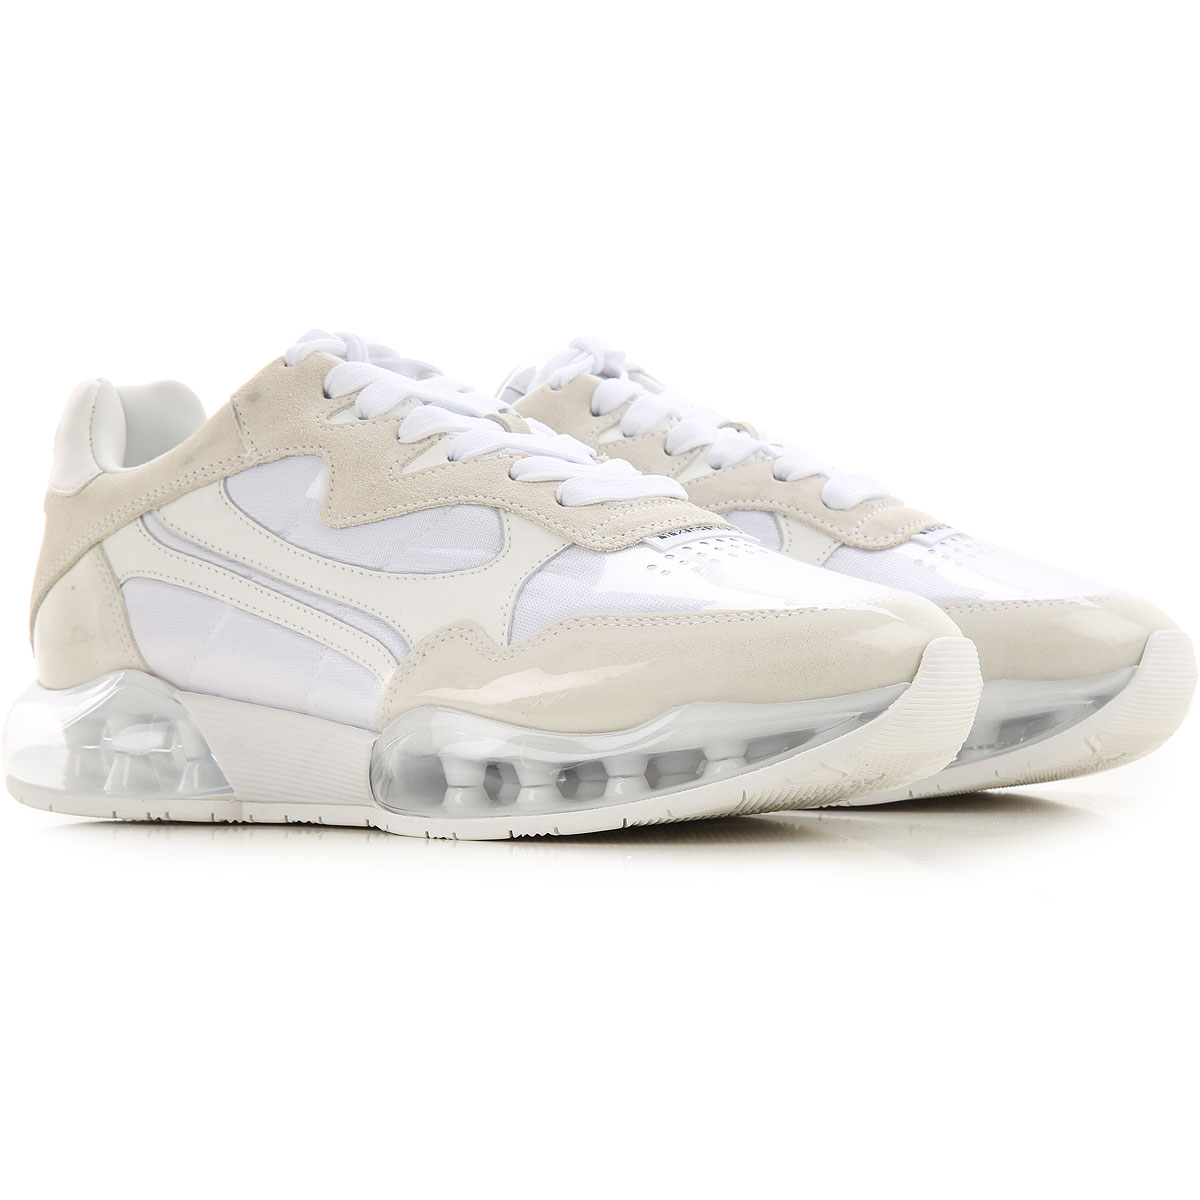 Alexander Wang Sneakers for Women On Sale, White, Suede leather, 2019, 7 9